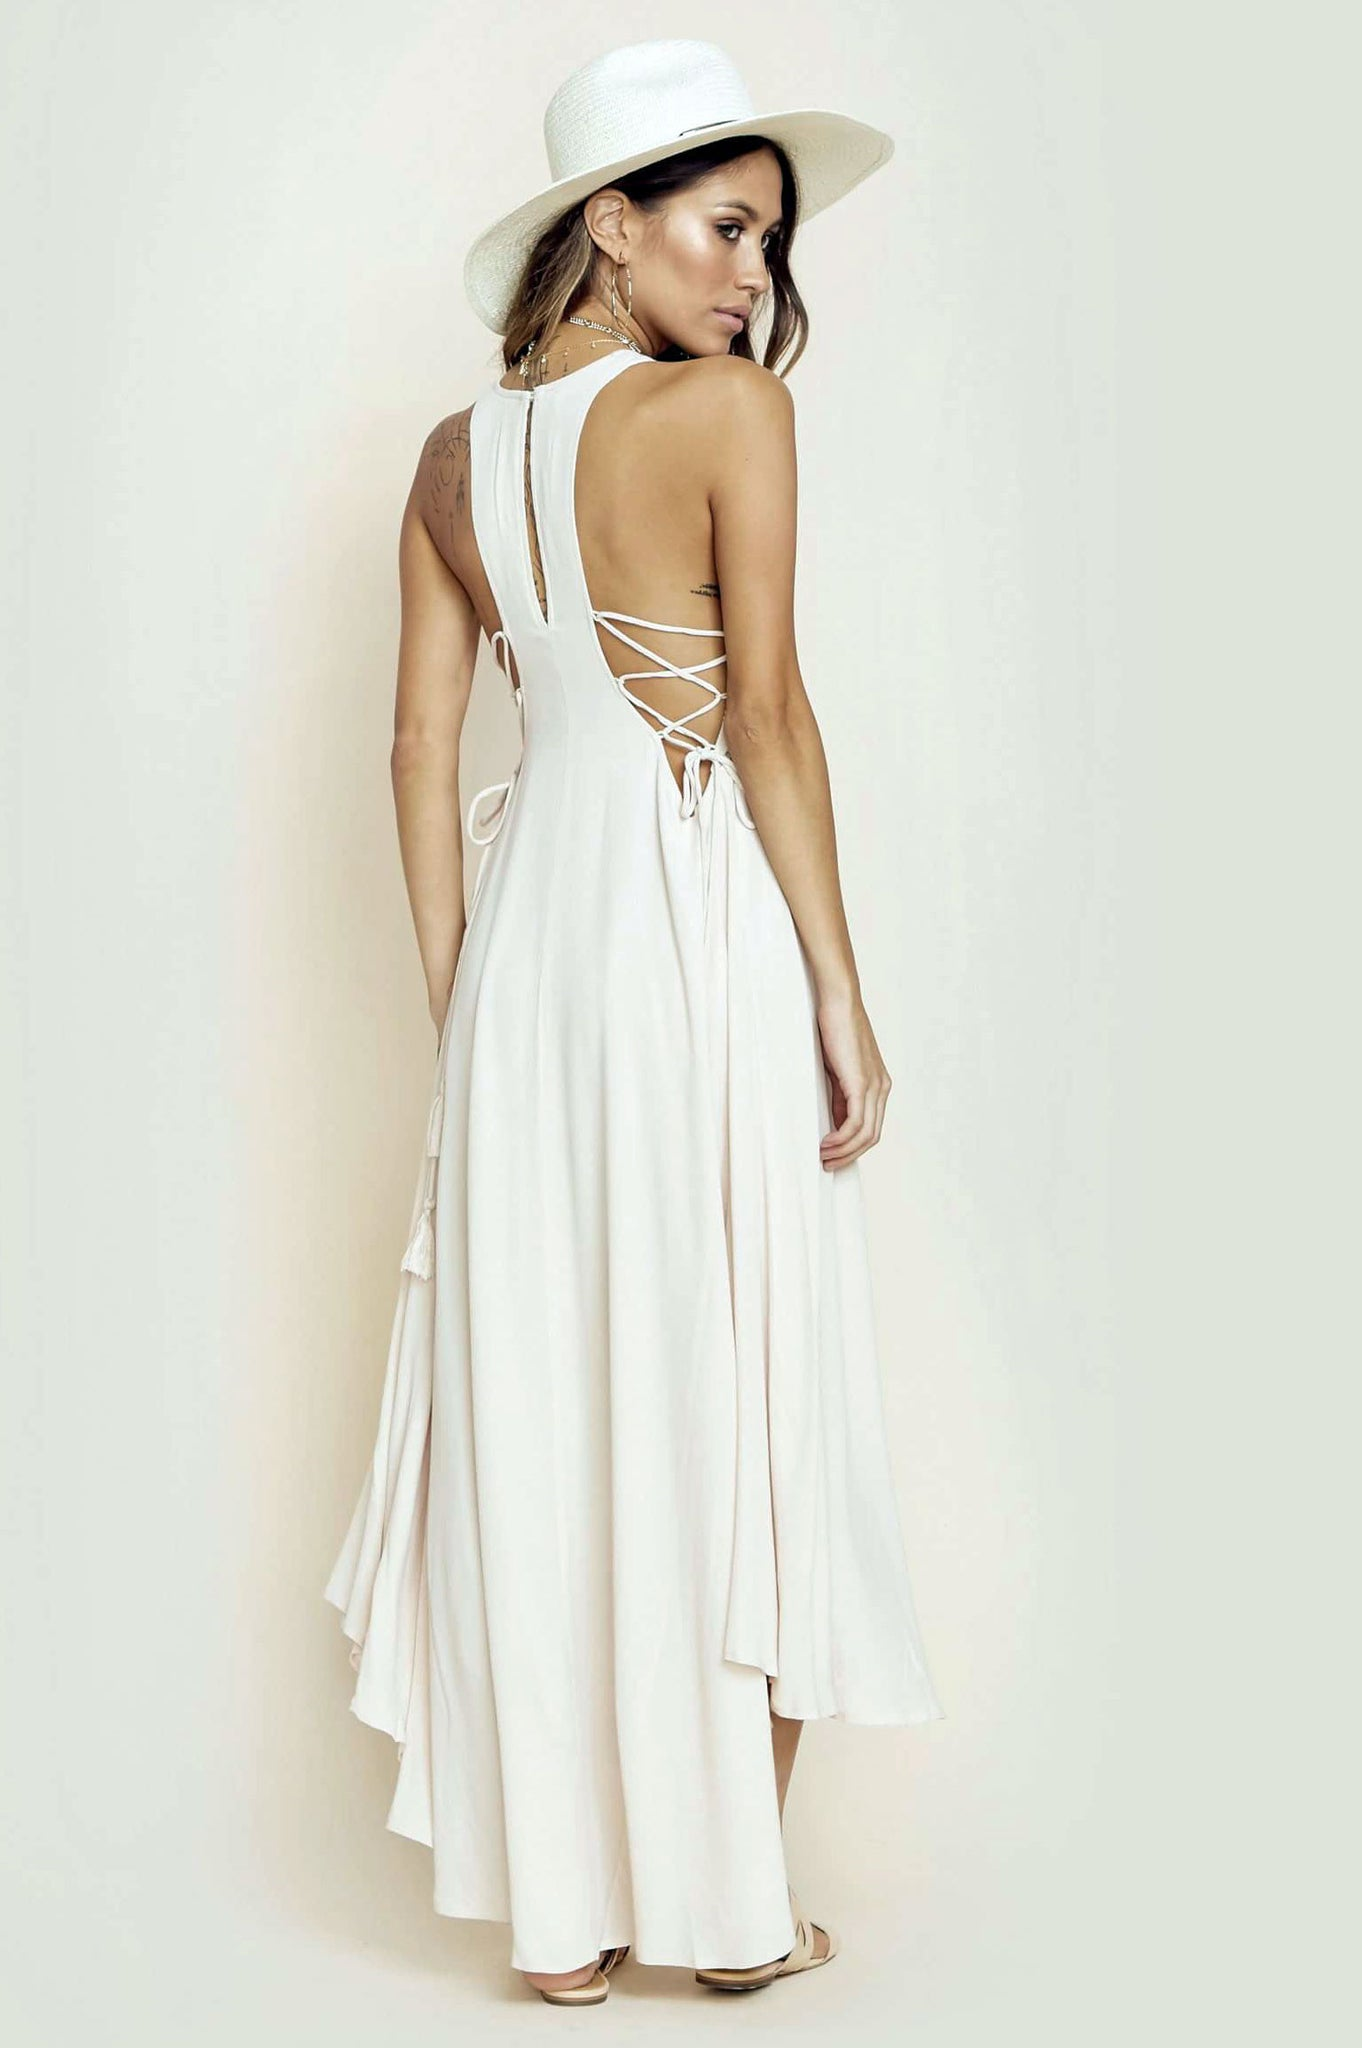 women's sleeveless ebroidery lace up long oversized maxi dress. Cream